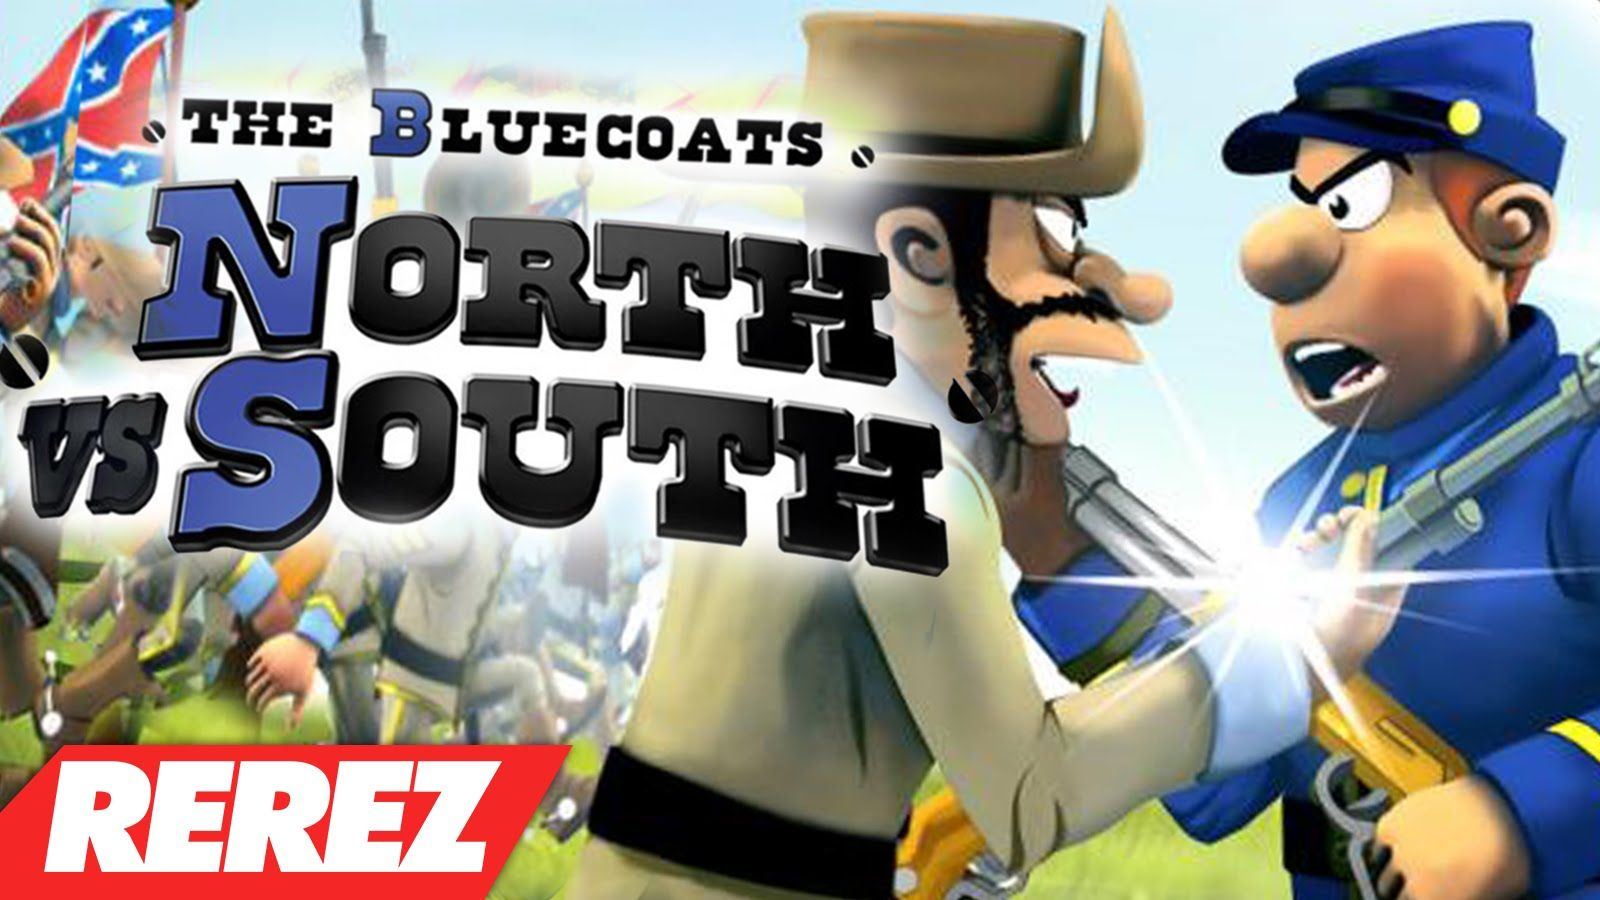 The classic game 'North & South' has been remastered for